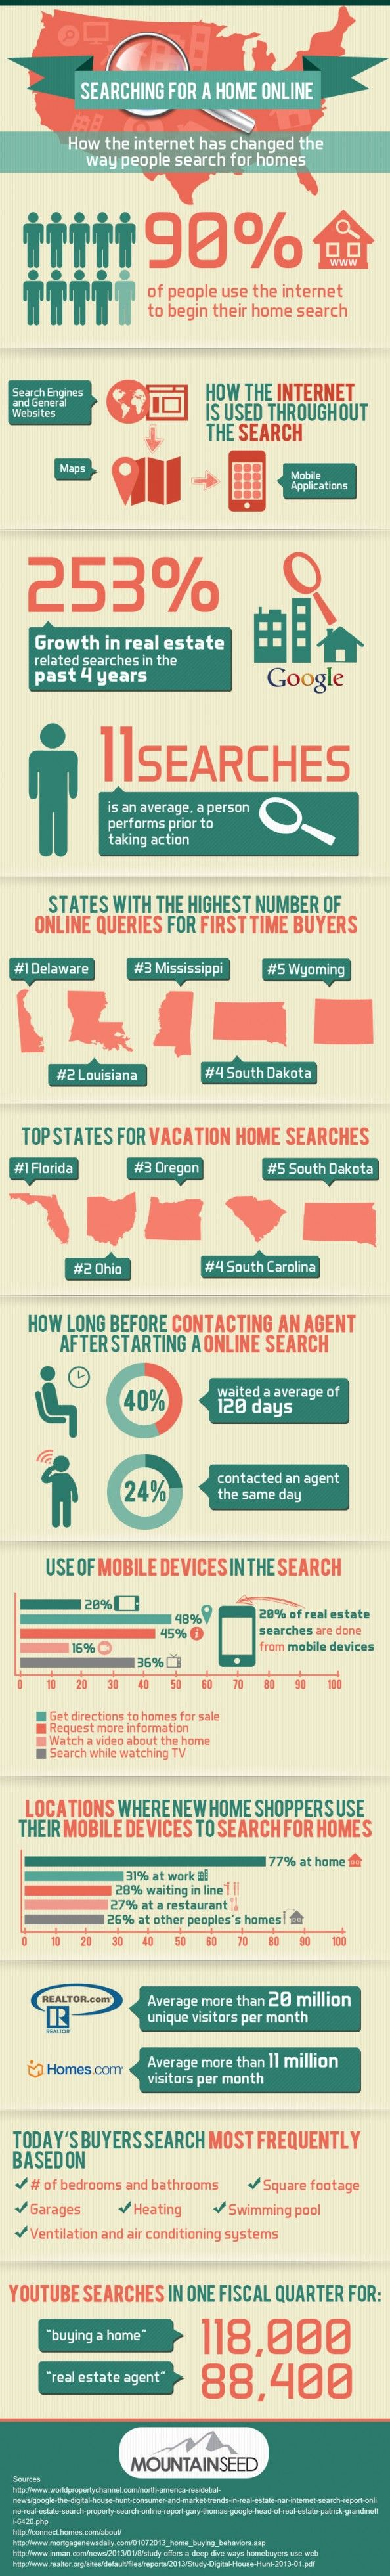 Searching-Online-for-a-Home